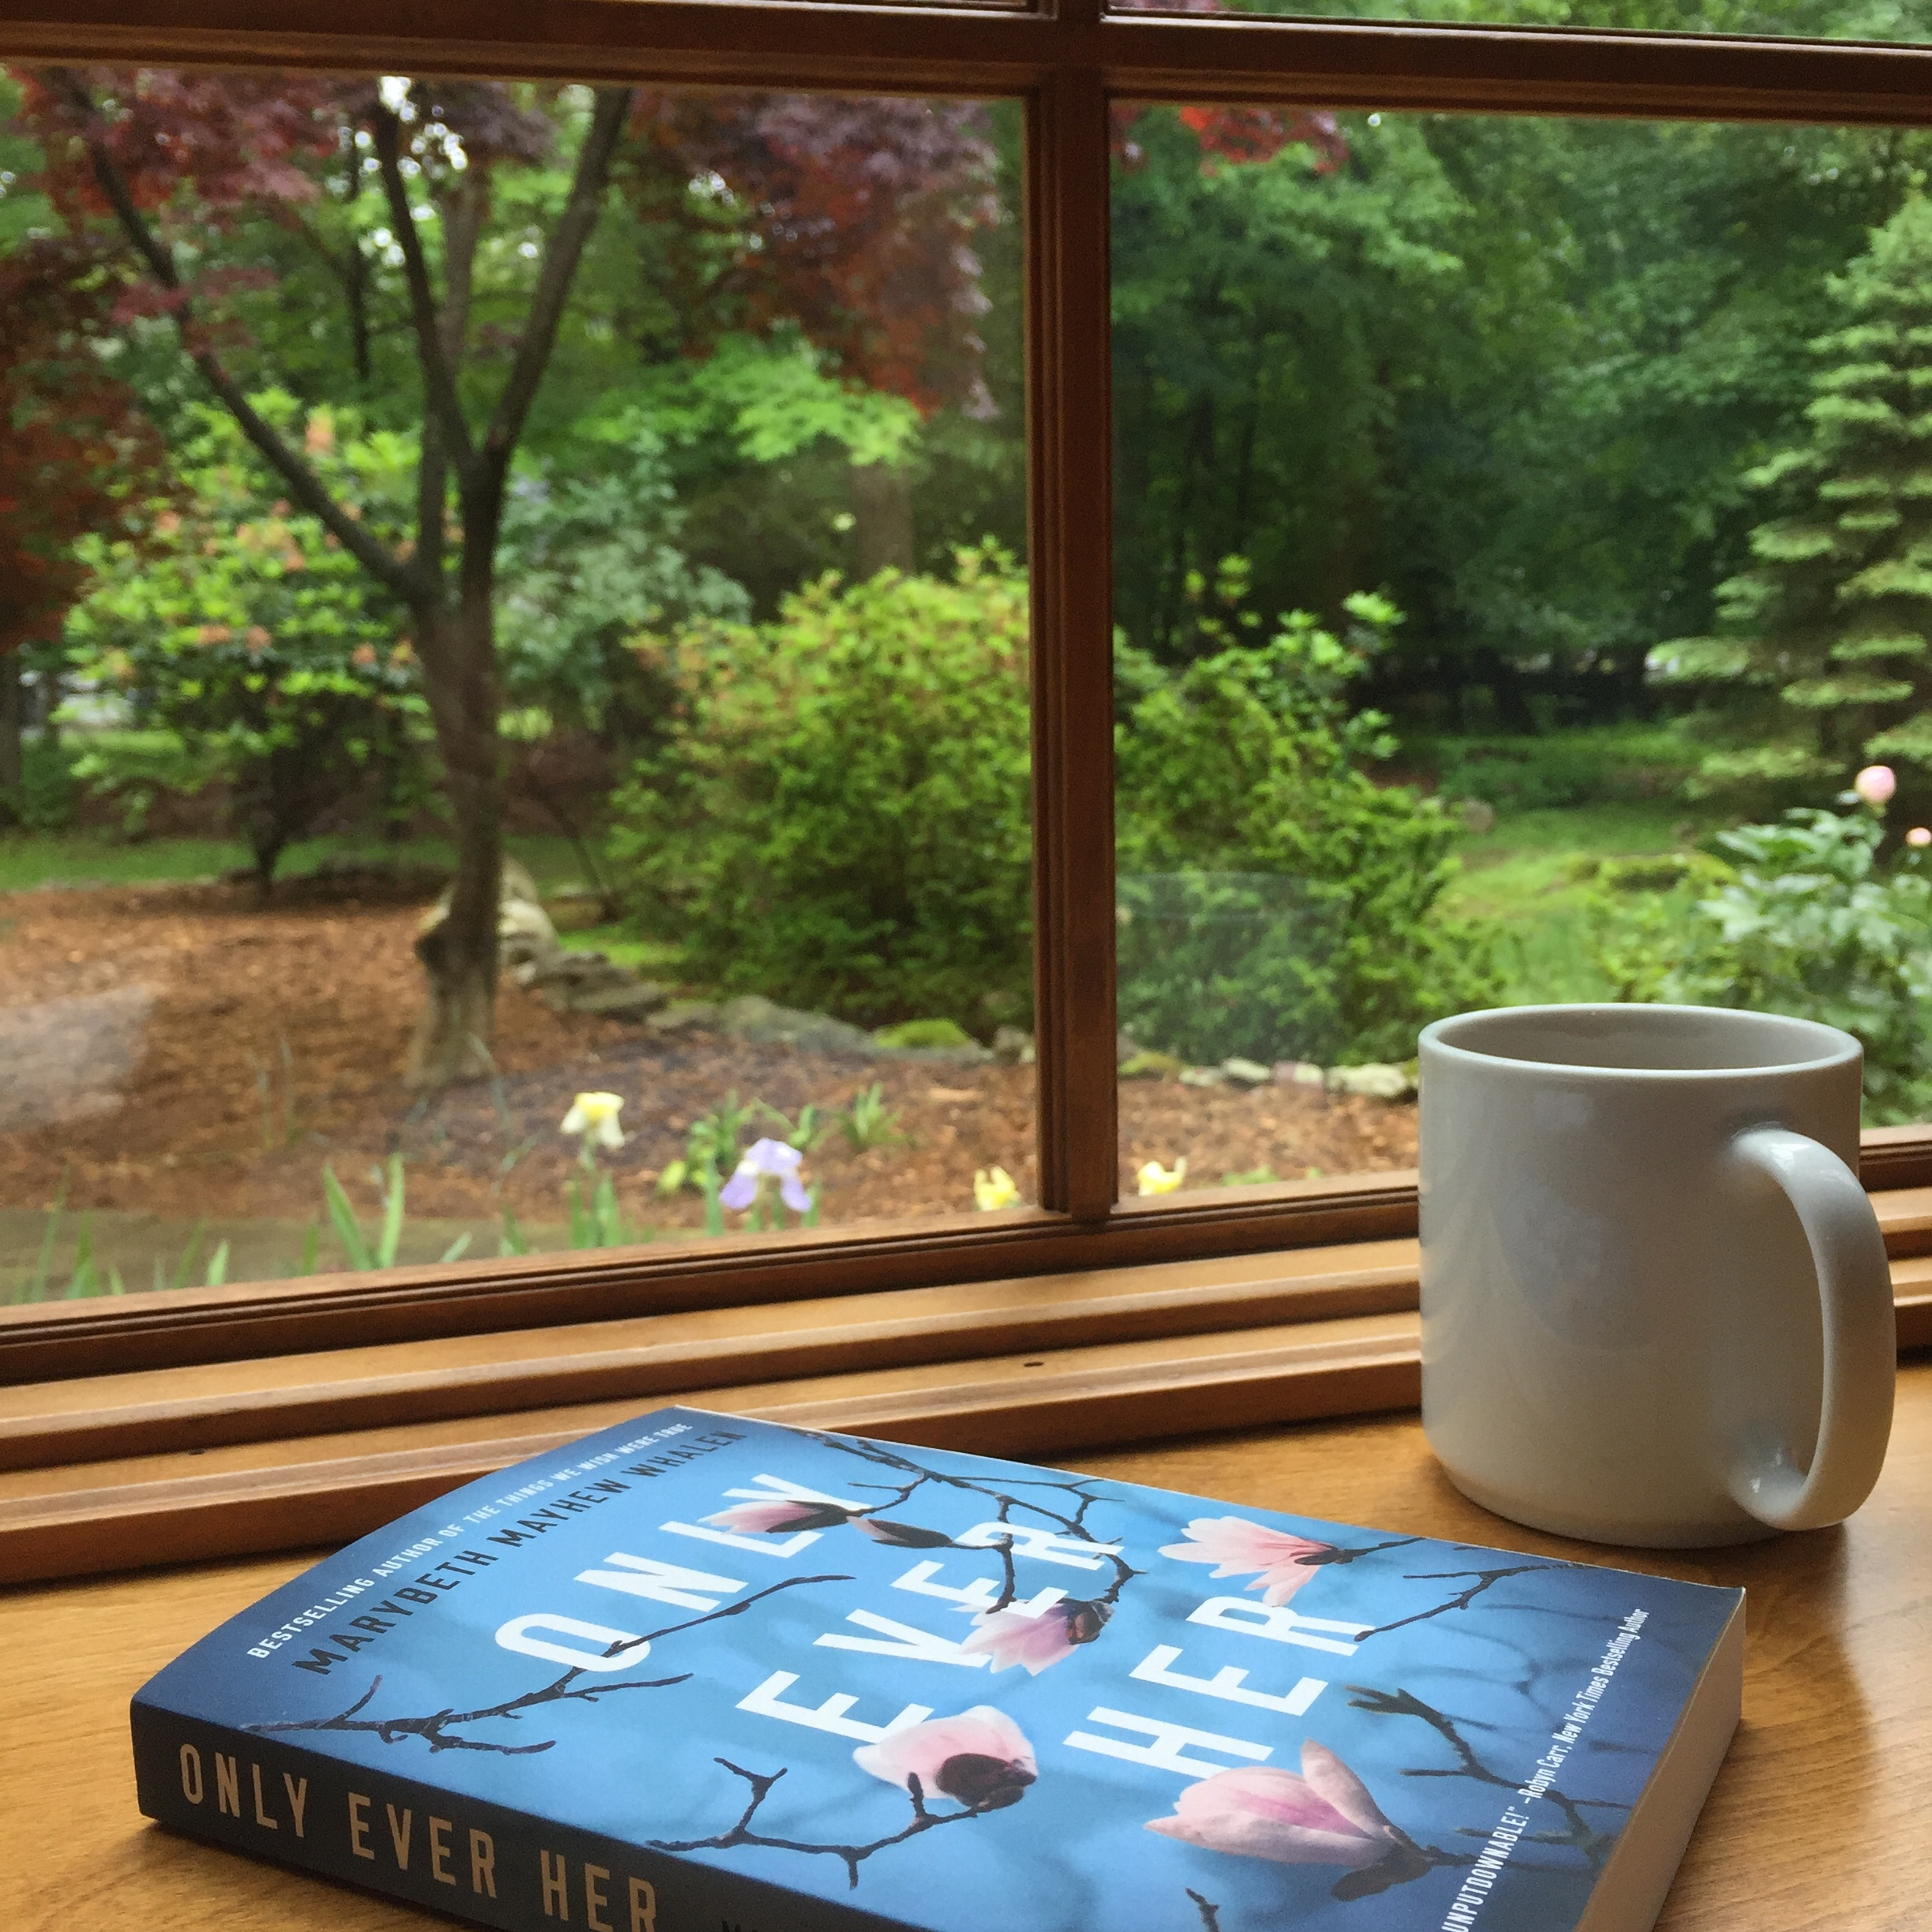 Book Review for ONLY EVER HER by Marybeth Mayhew Whalen